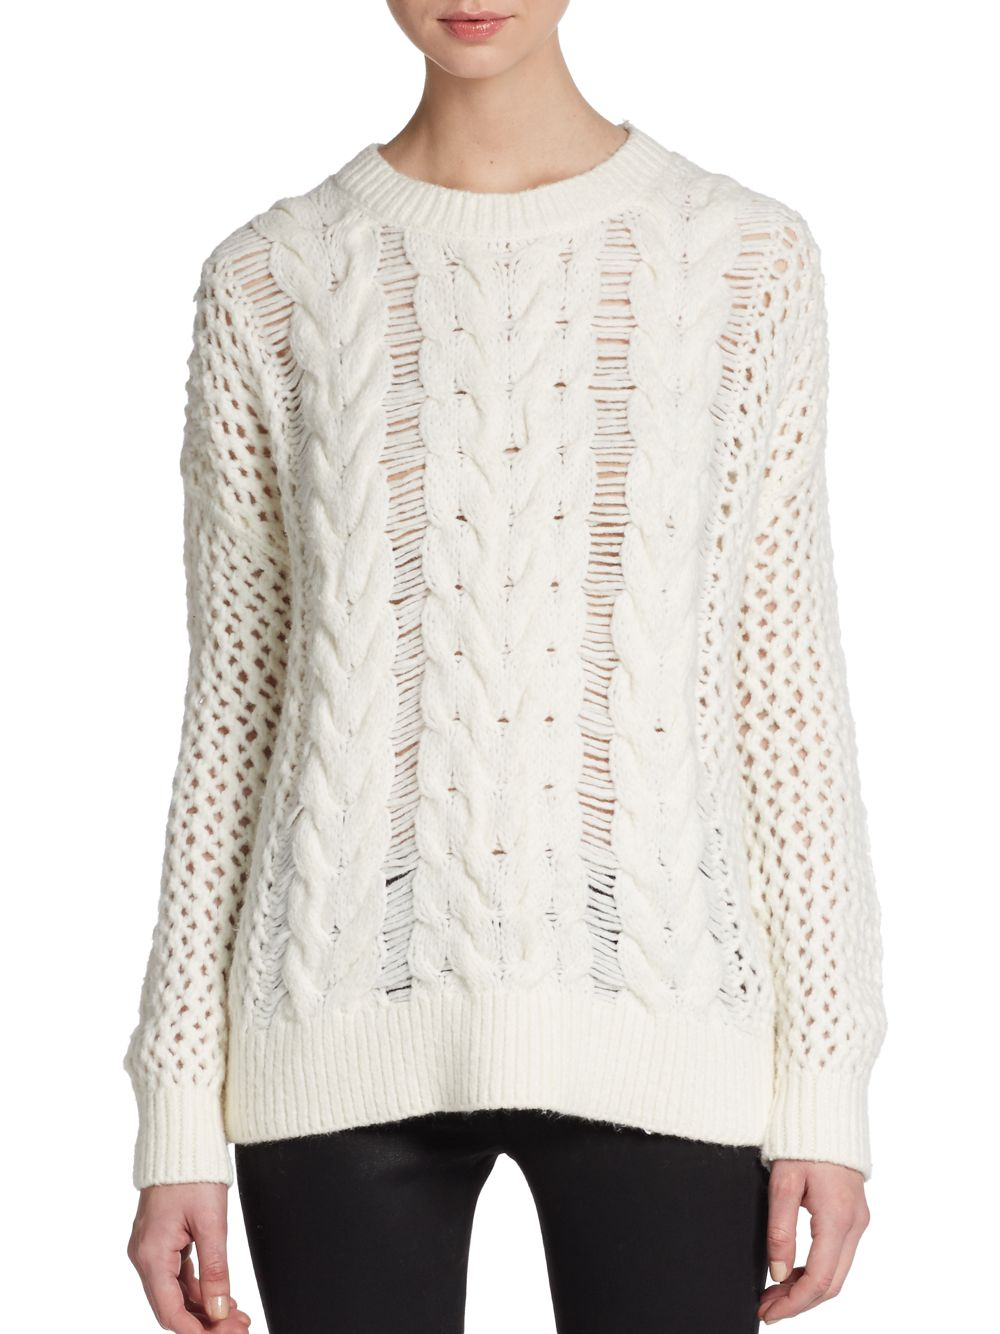 Elizabeth and james Hand Knit Cable Sweater in Natural | Lyst